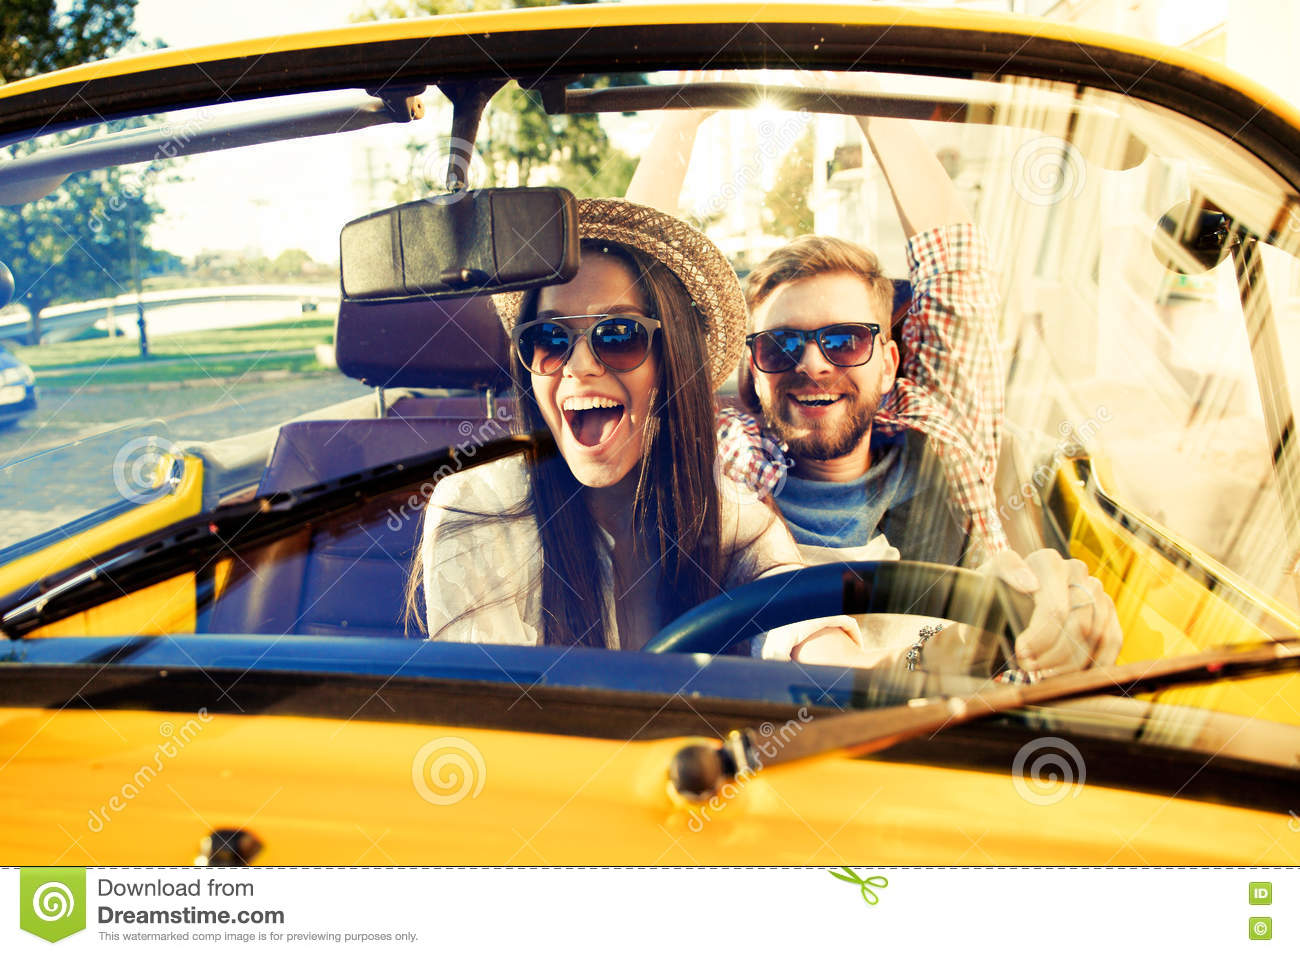 Happy to travel together. Joyful young couple smiling while riding in onvertible